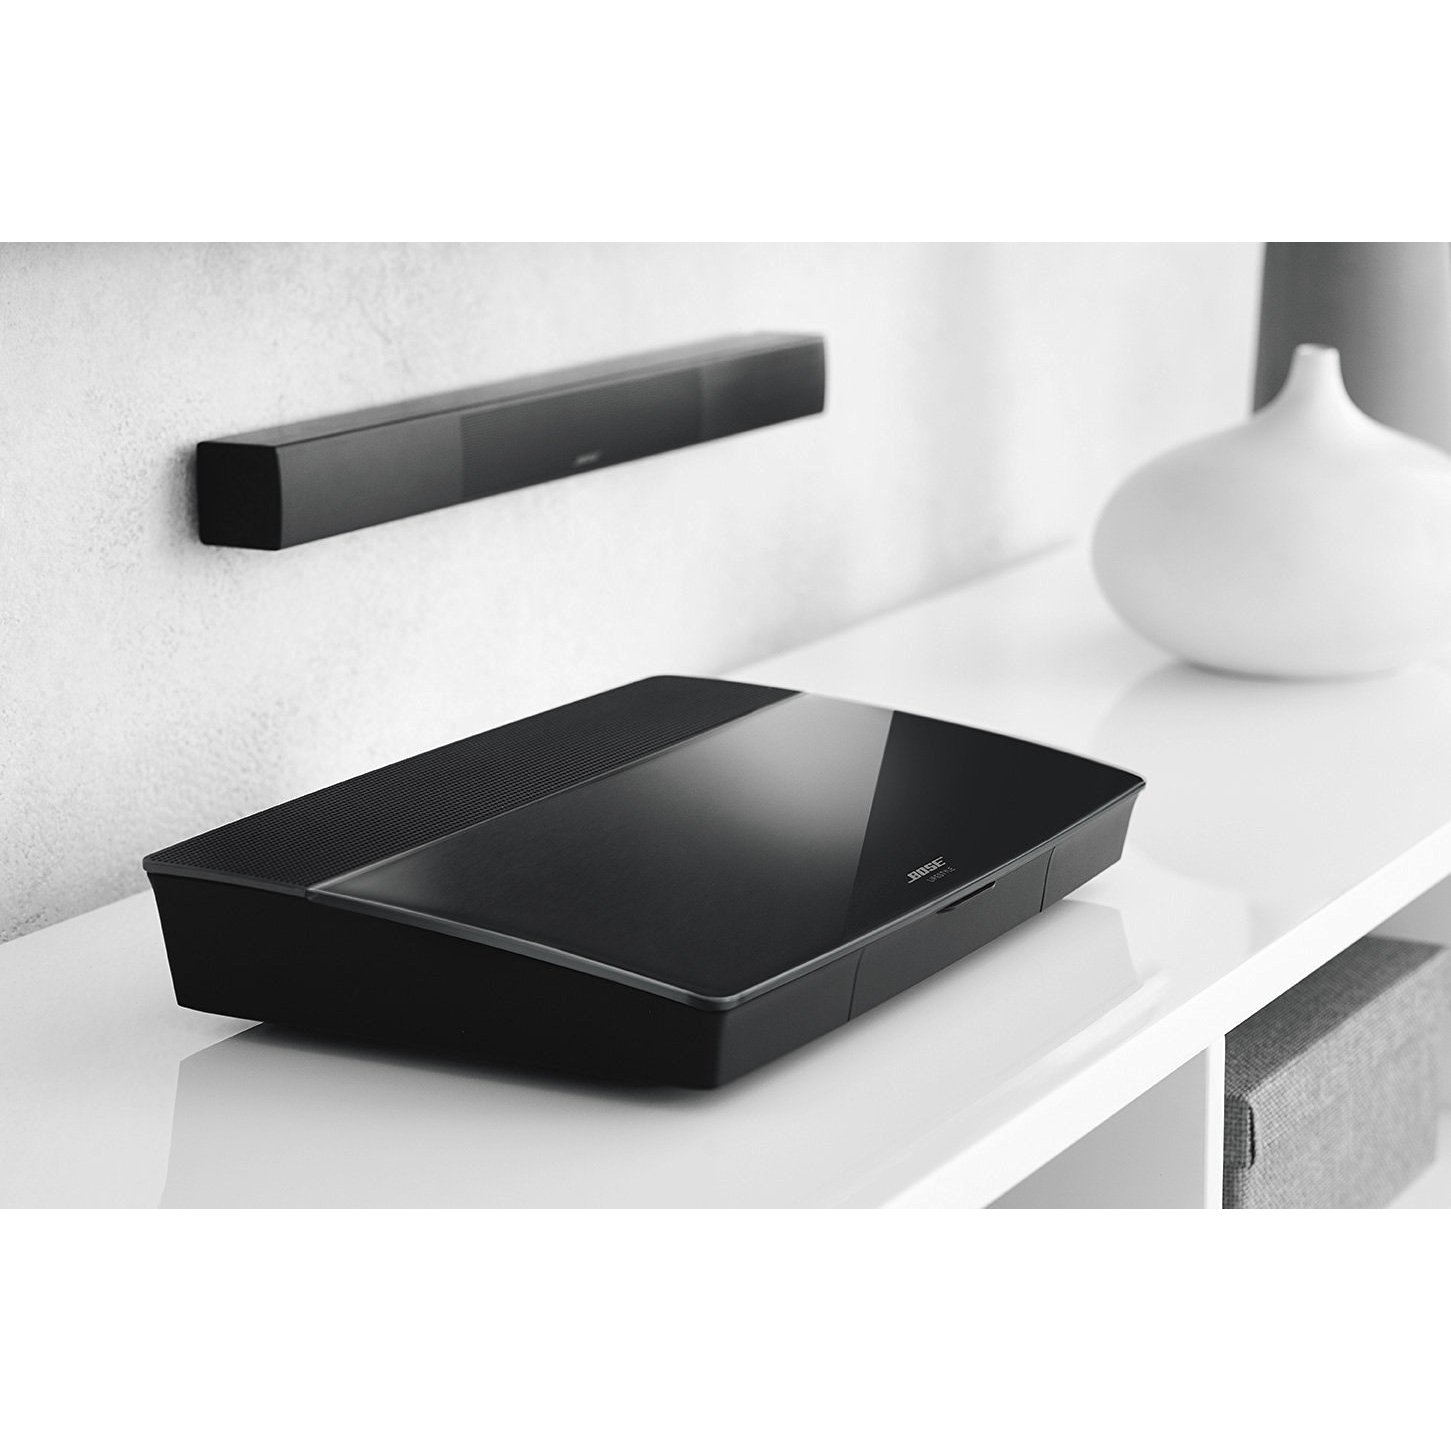 Bose Lifestyle 650 Home Entertainment System | RC Willey Furniture Store